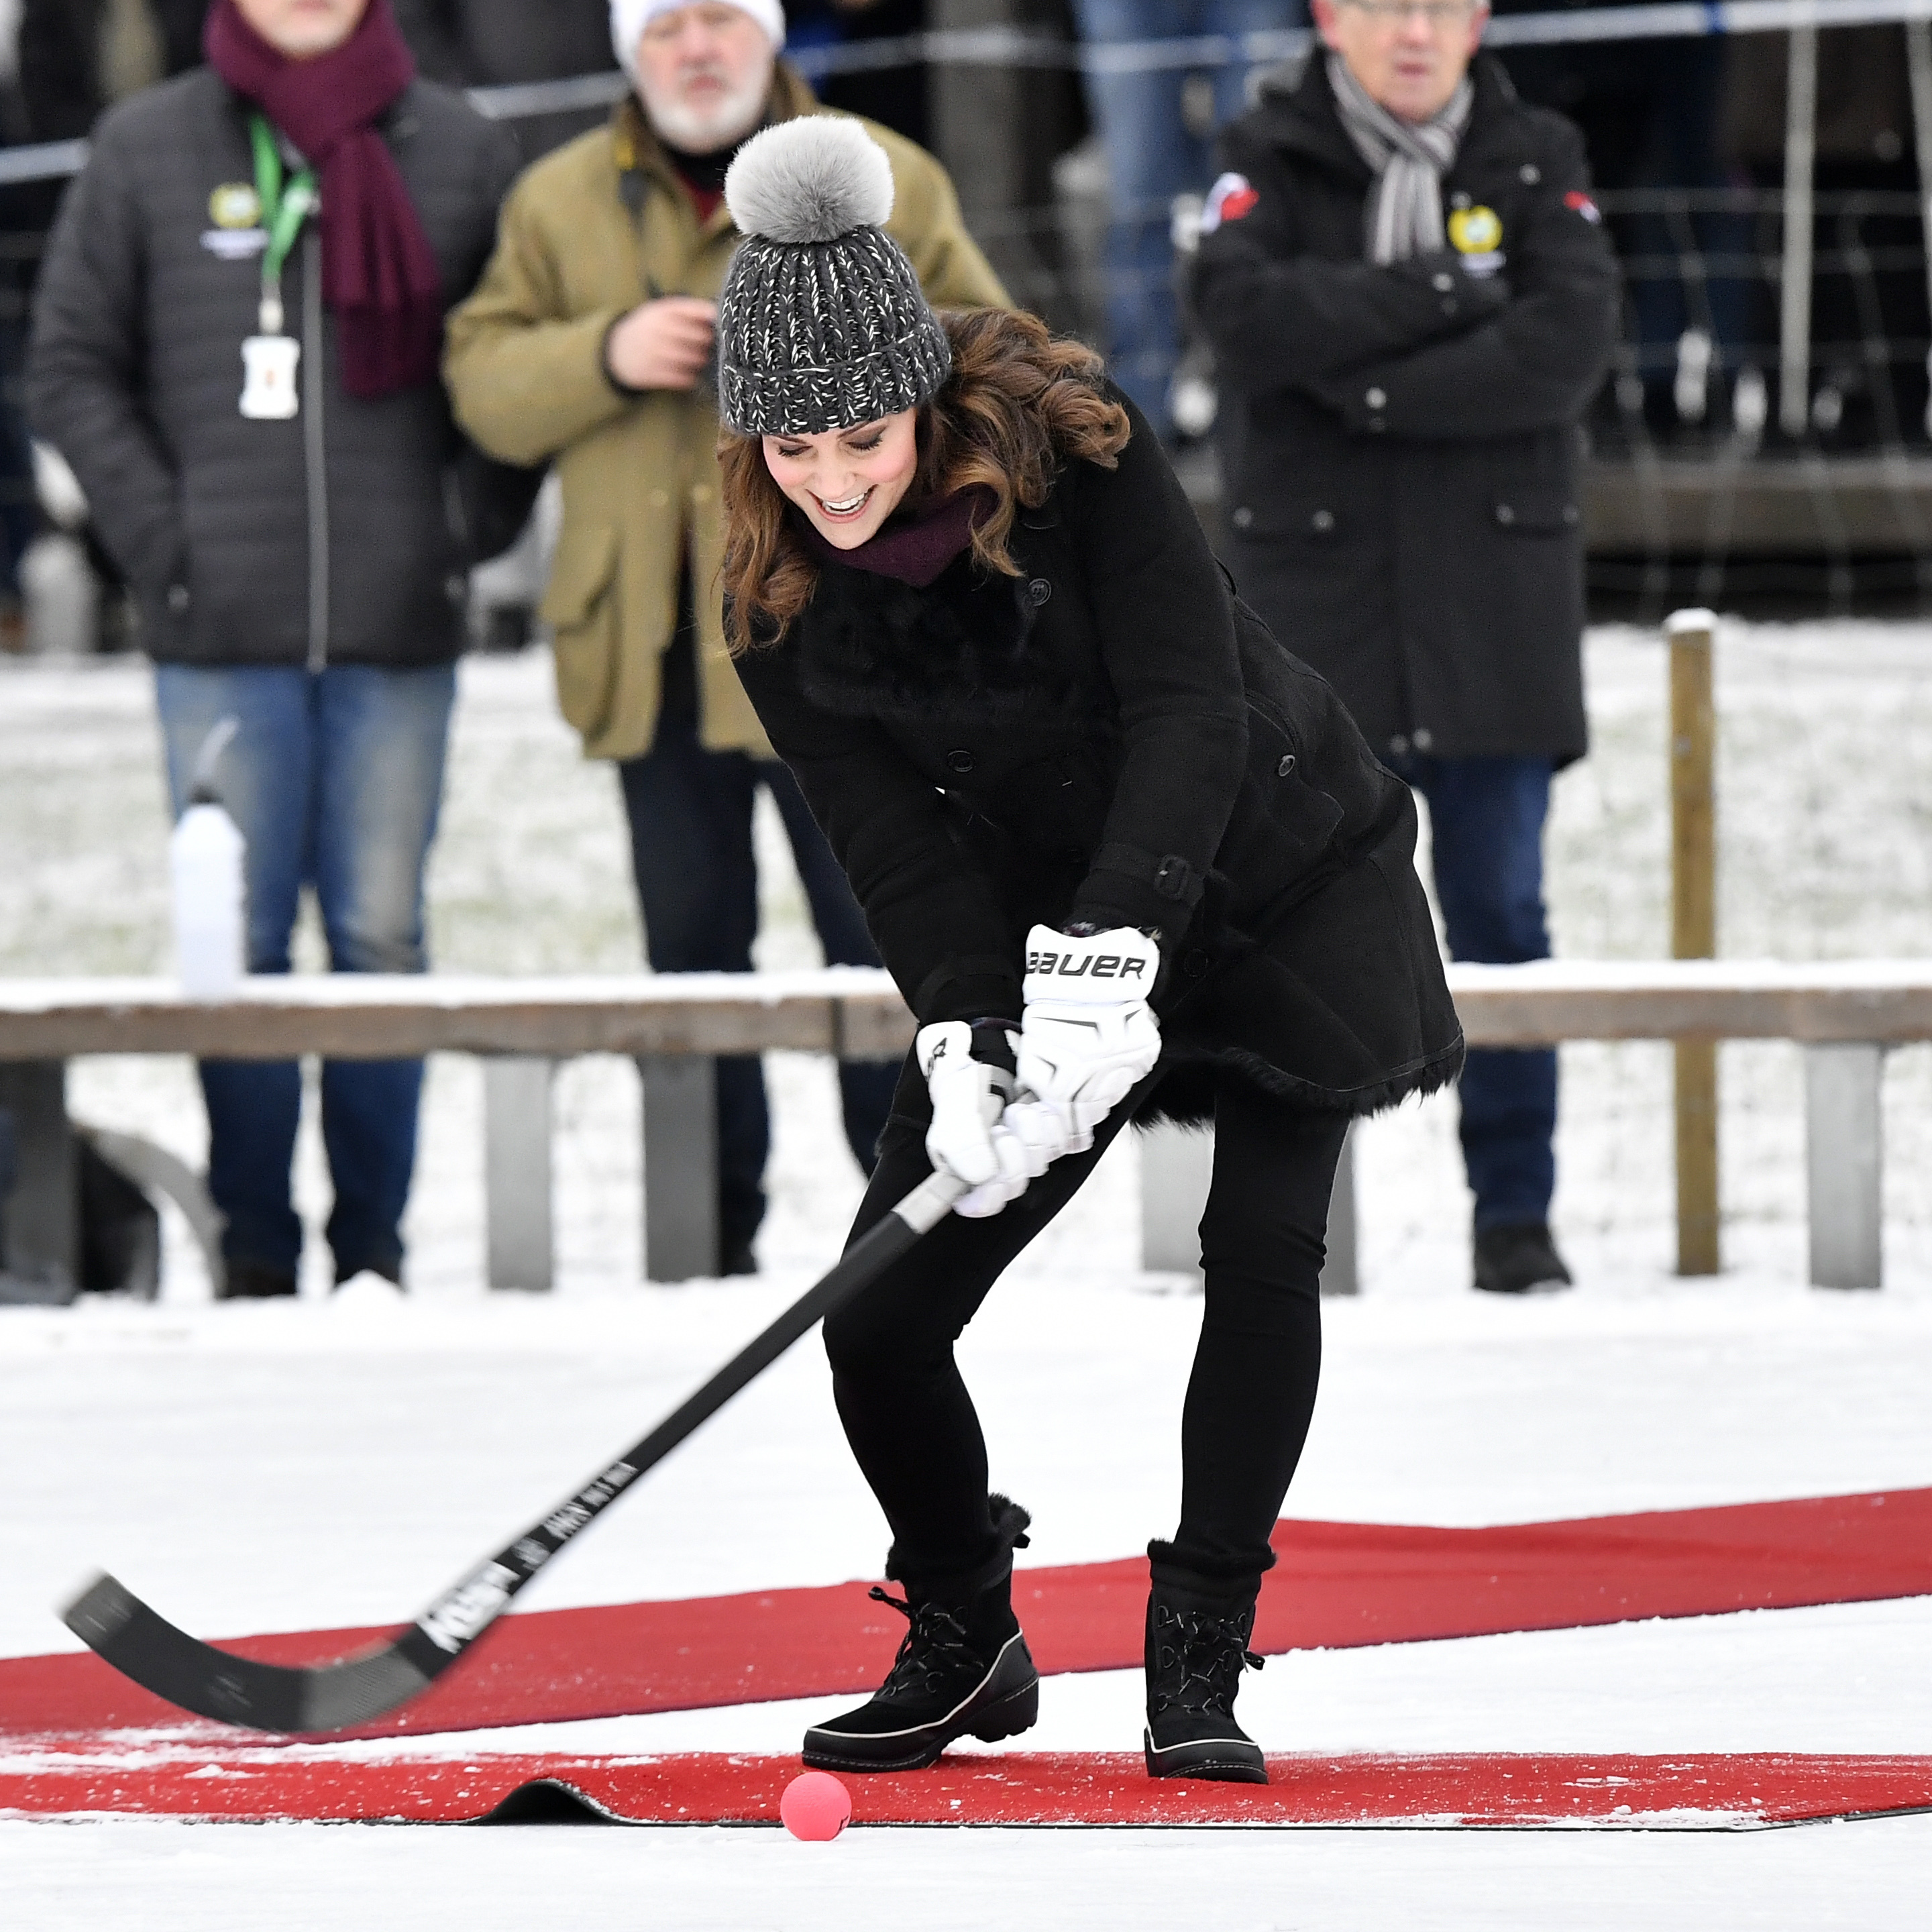 <div class='meta'><div class='origin-logo' data-origin='none'></div><span class='caption-text' data-credit='Jonas Ekstromer/TT via AP'>Kate tries a shot with a bandy stick in Stockholm, Sweden, Tuesday Jan. 30, 2018, during Prince William and Duchess of Cambridge 4-day visit to Sweden and Norway.</span></div>